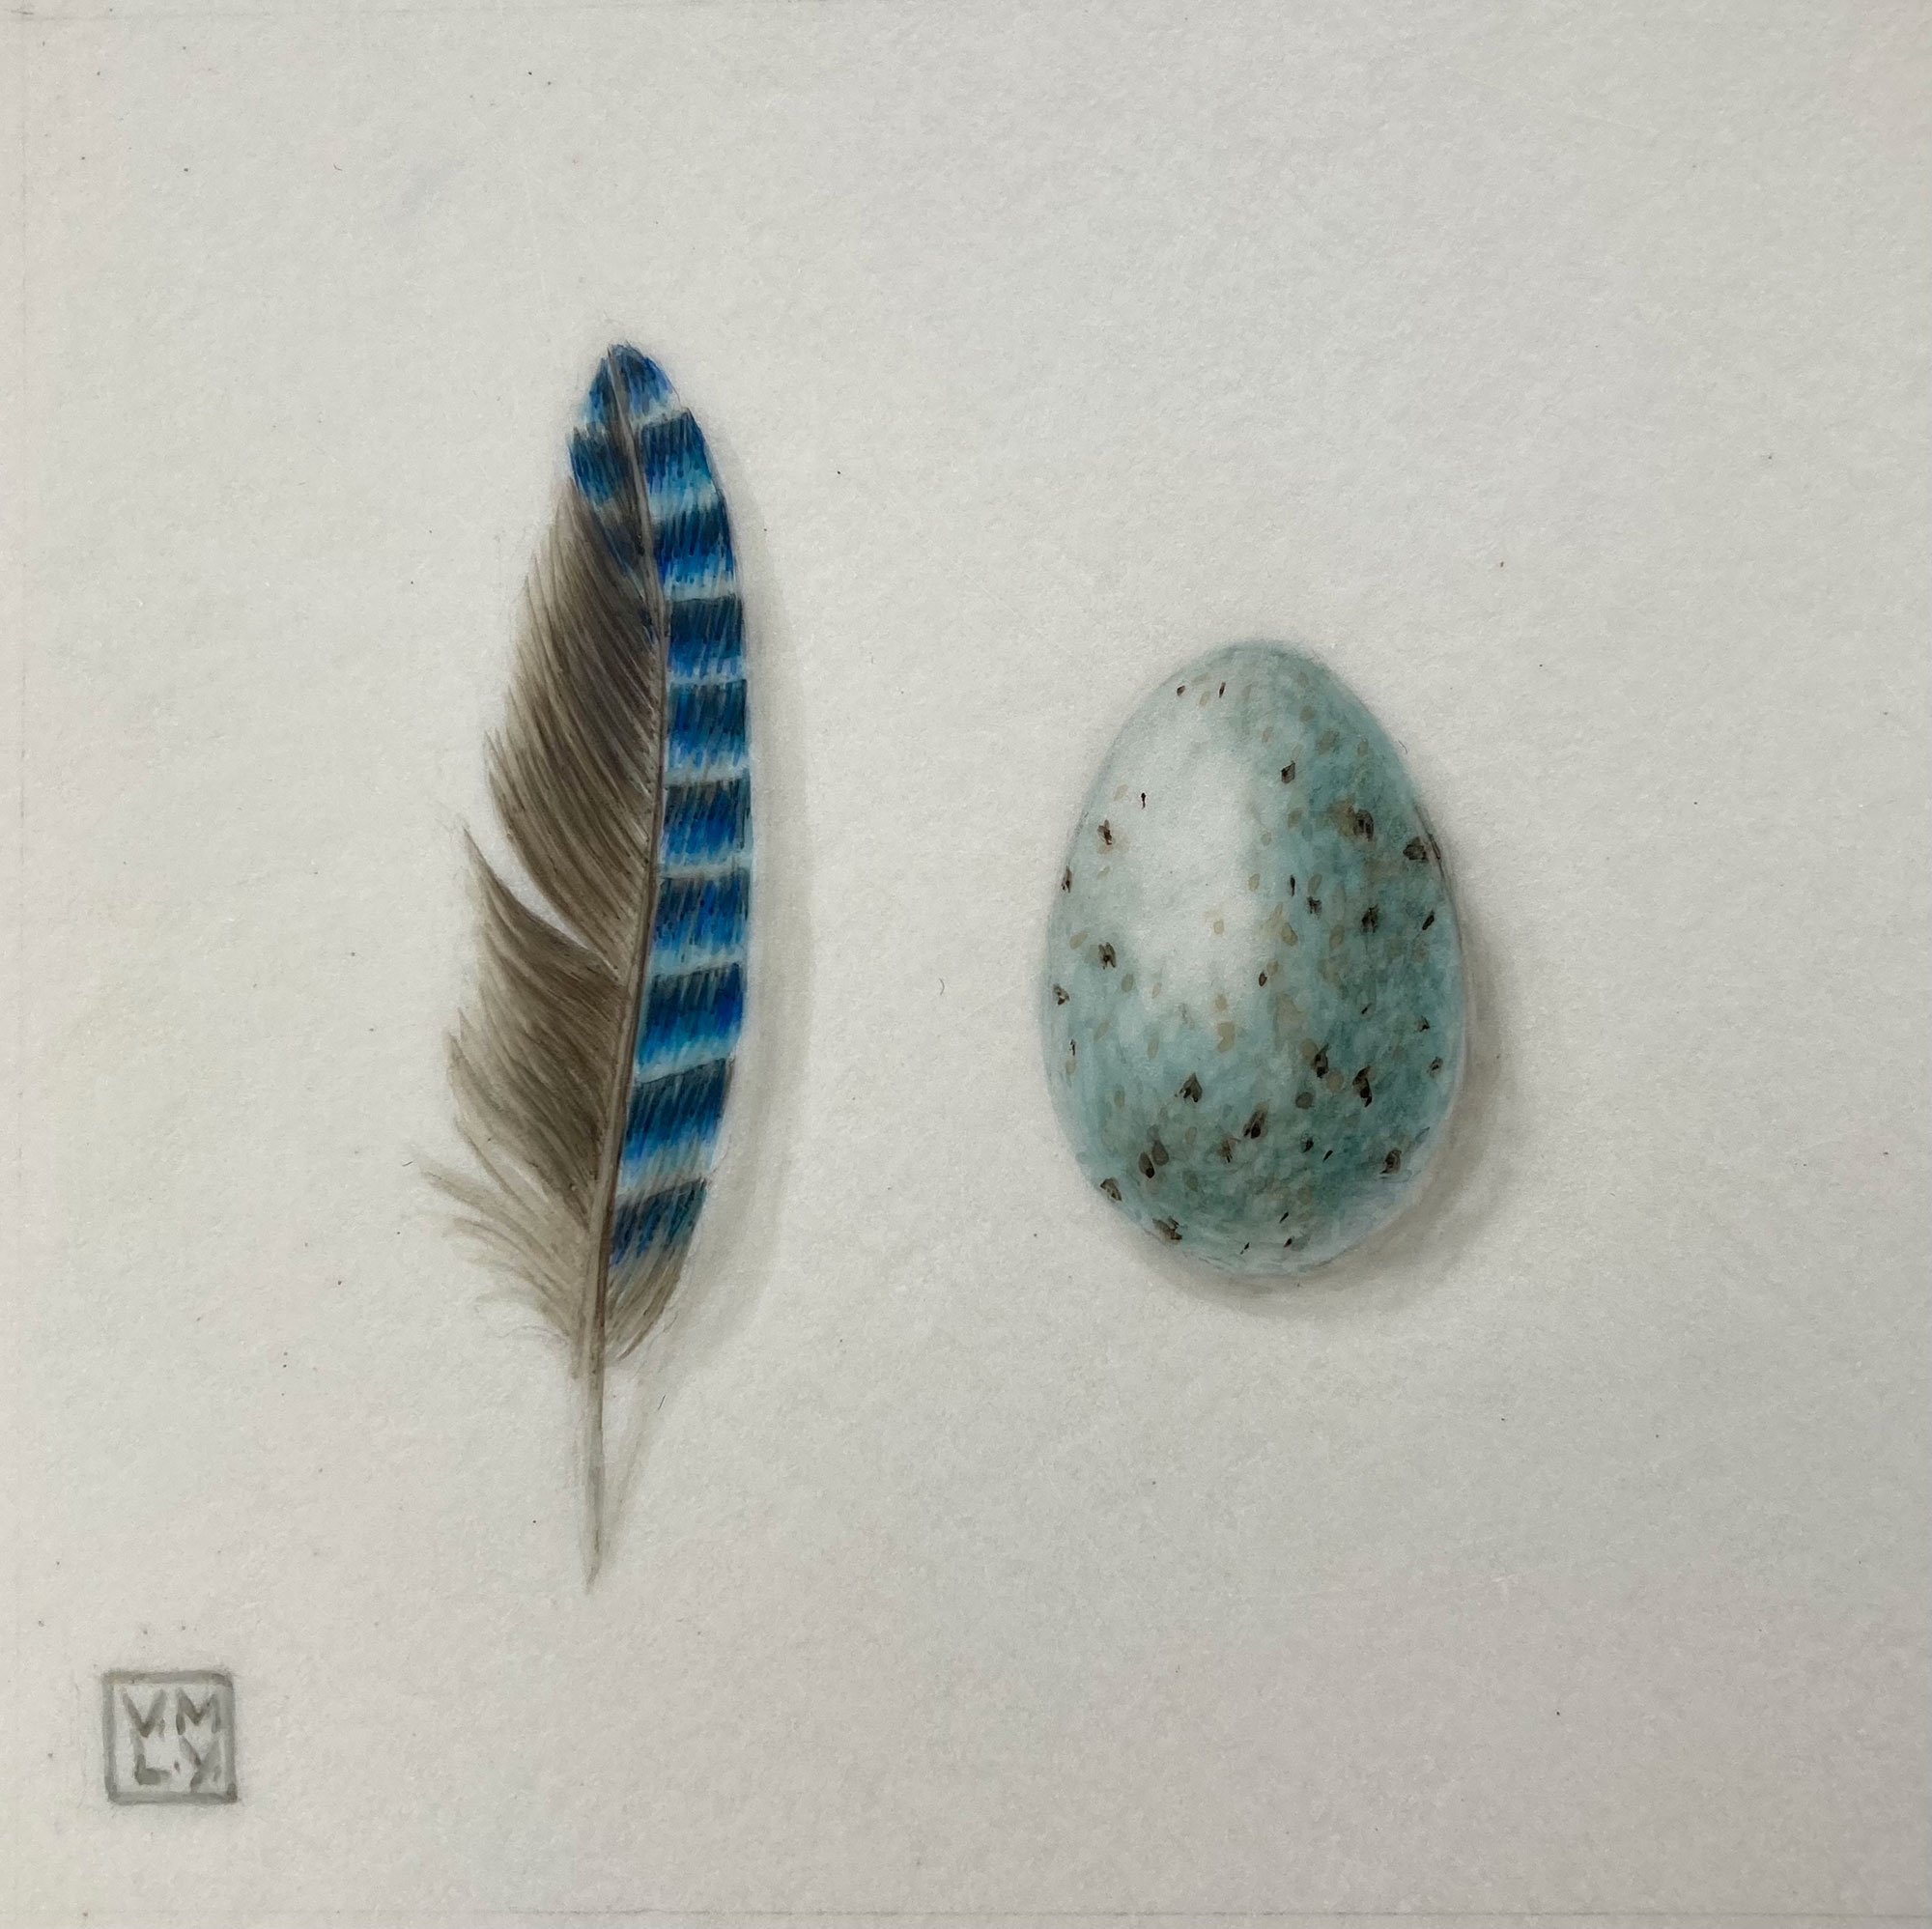 Louise Young Little Blue II